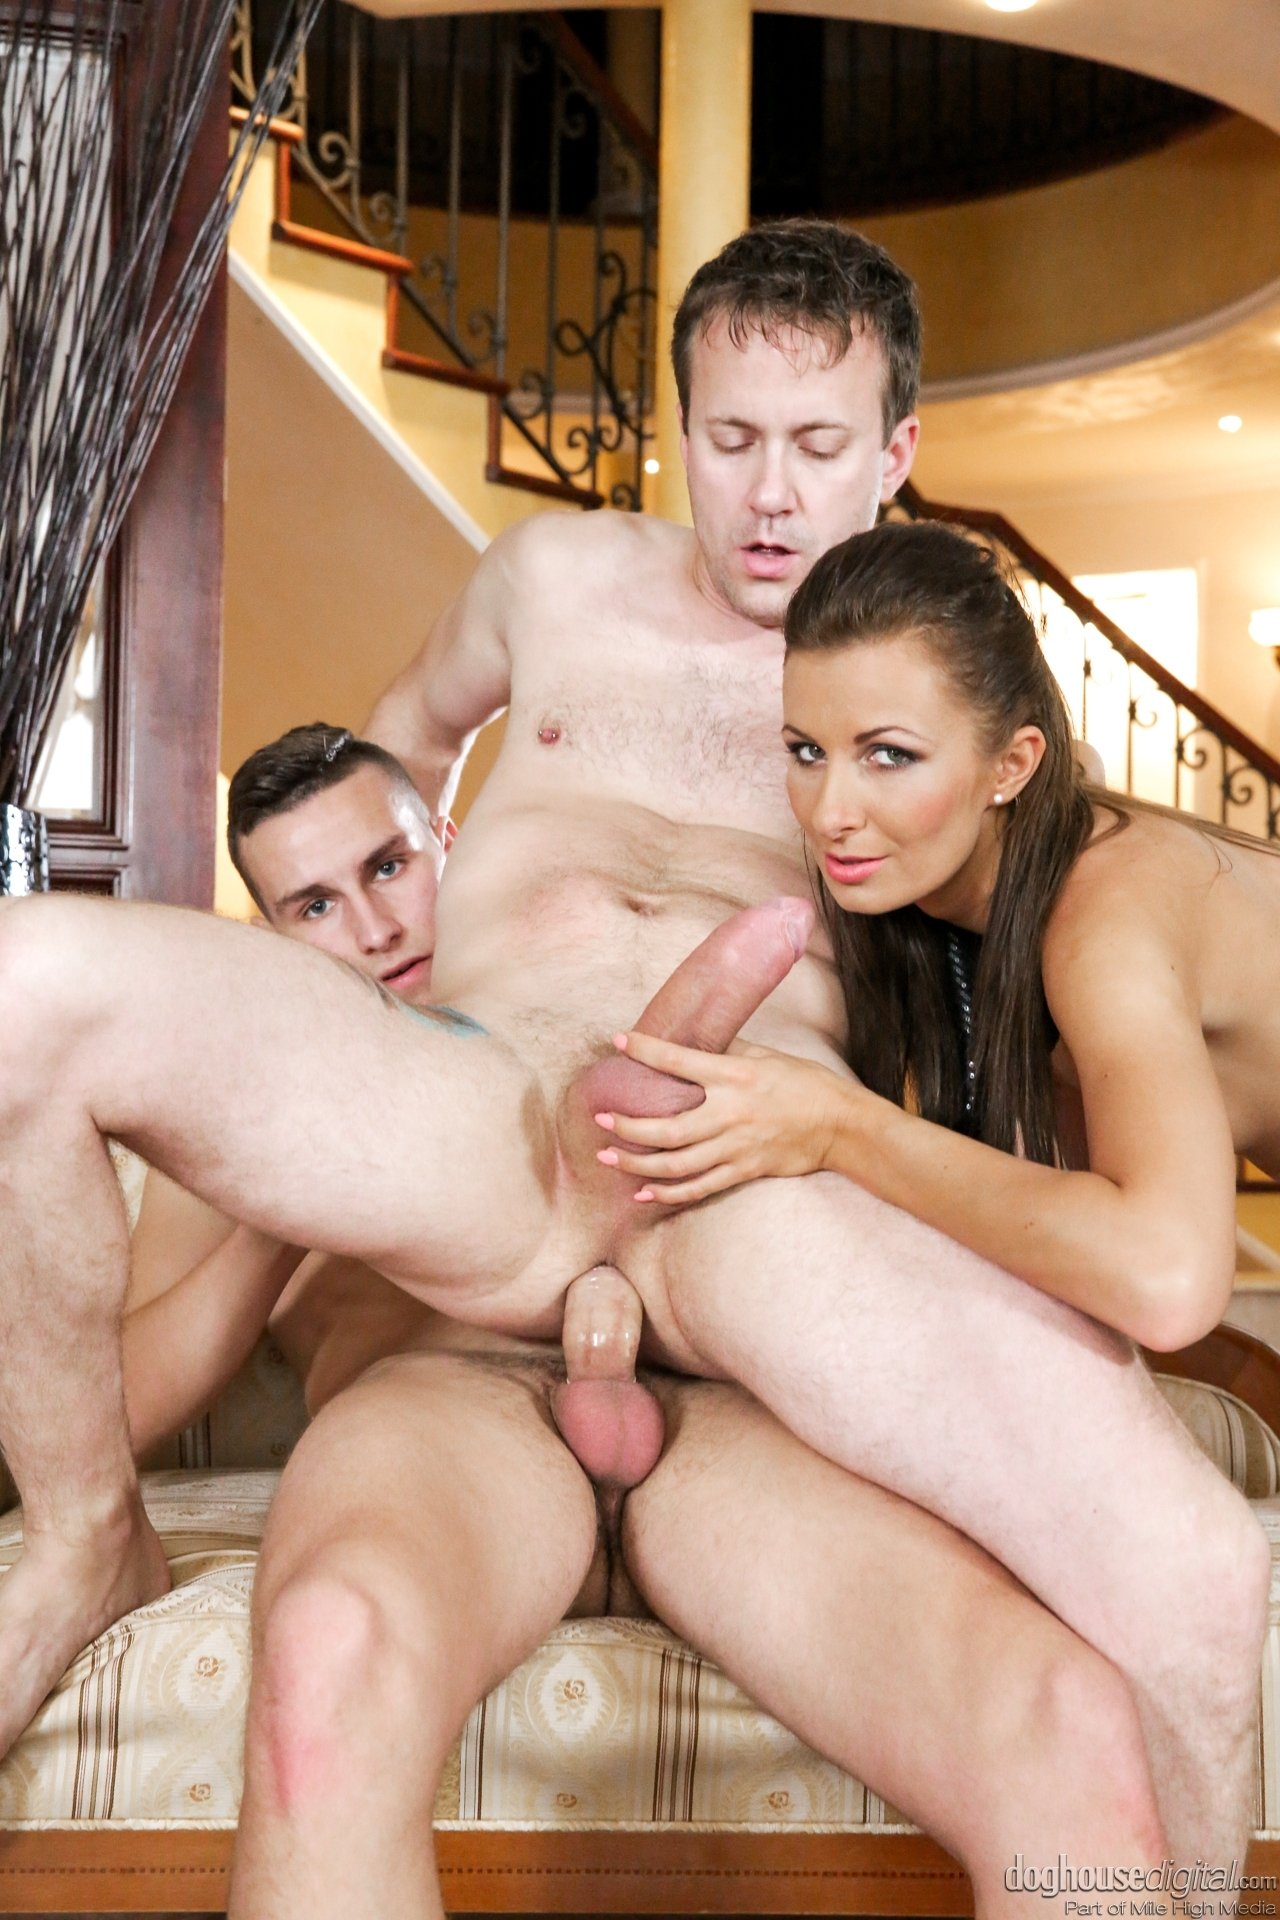 threesome sex family porn hd sex party